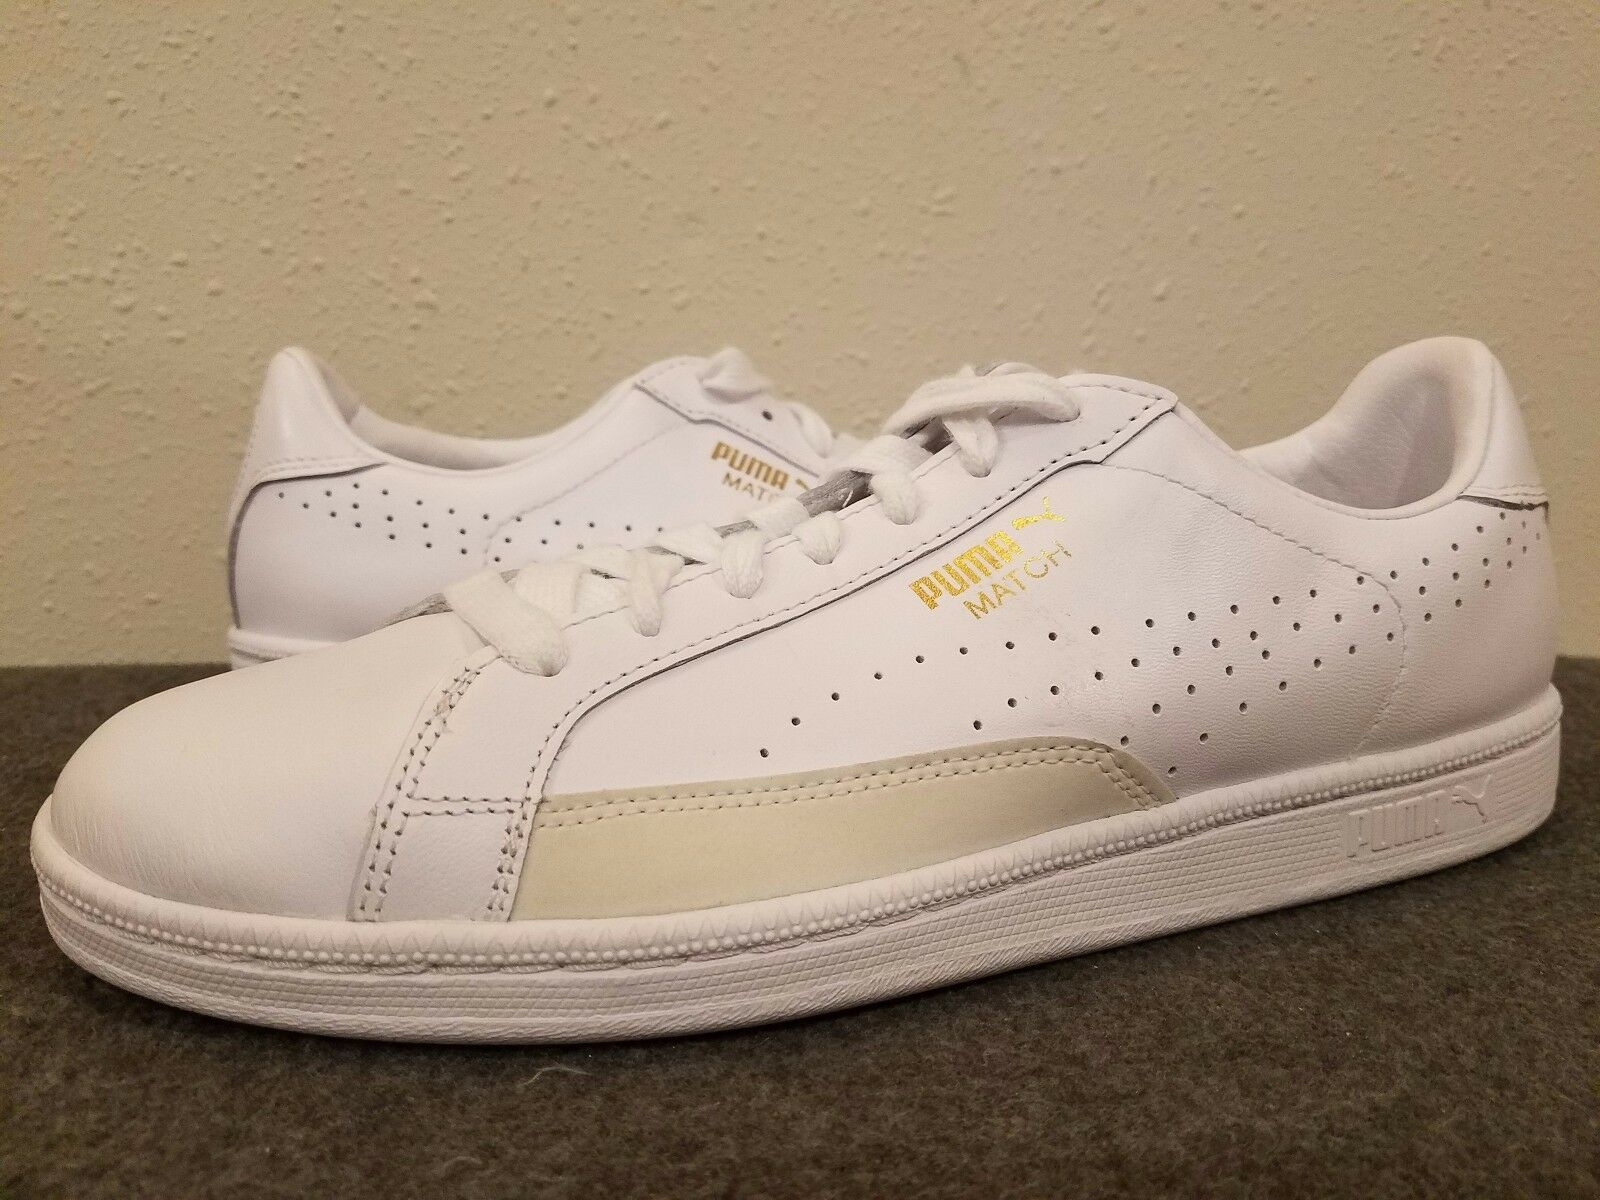 PUMA Match Tennis White Premium Leather Comfortable Brand discount